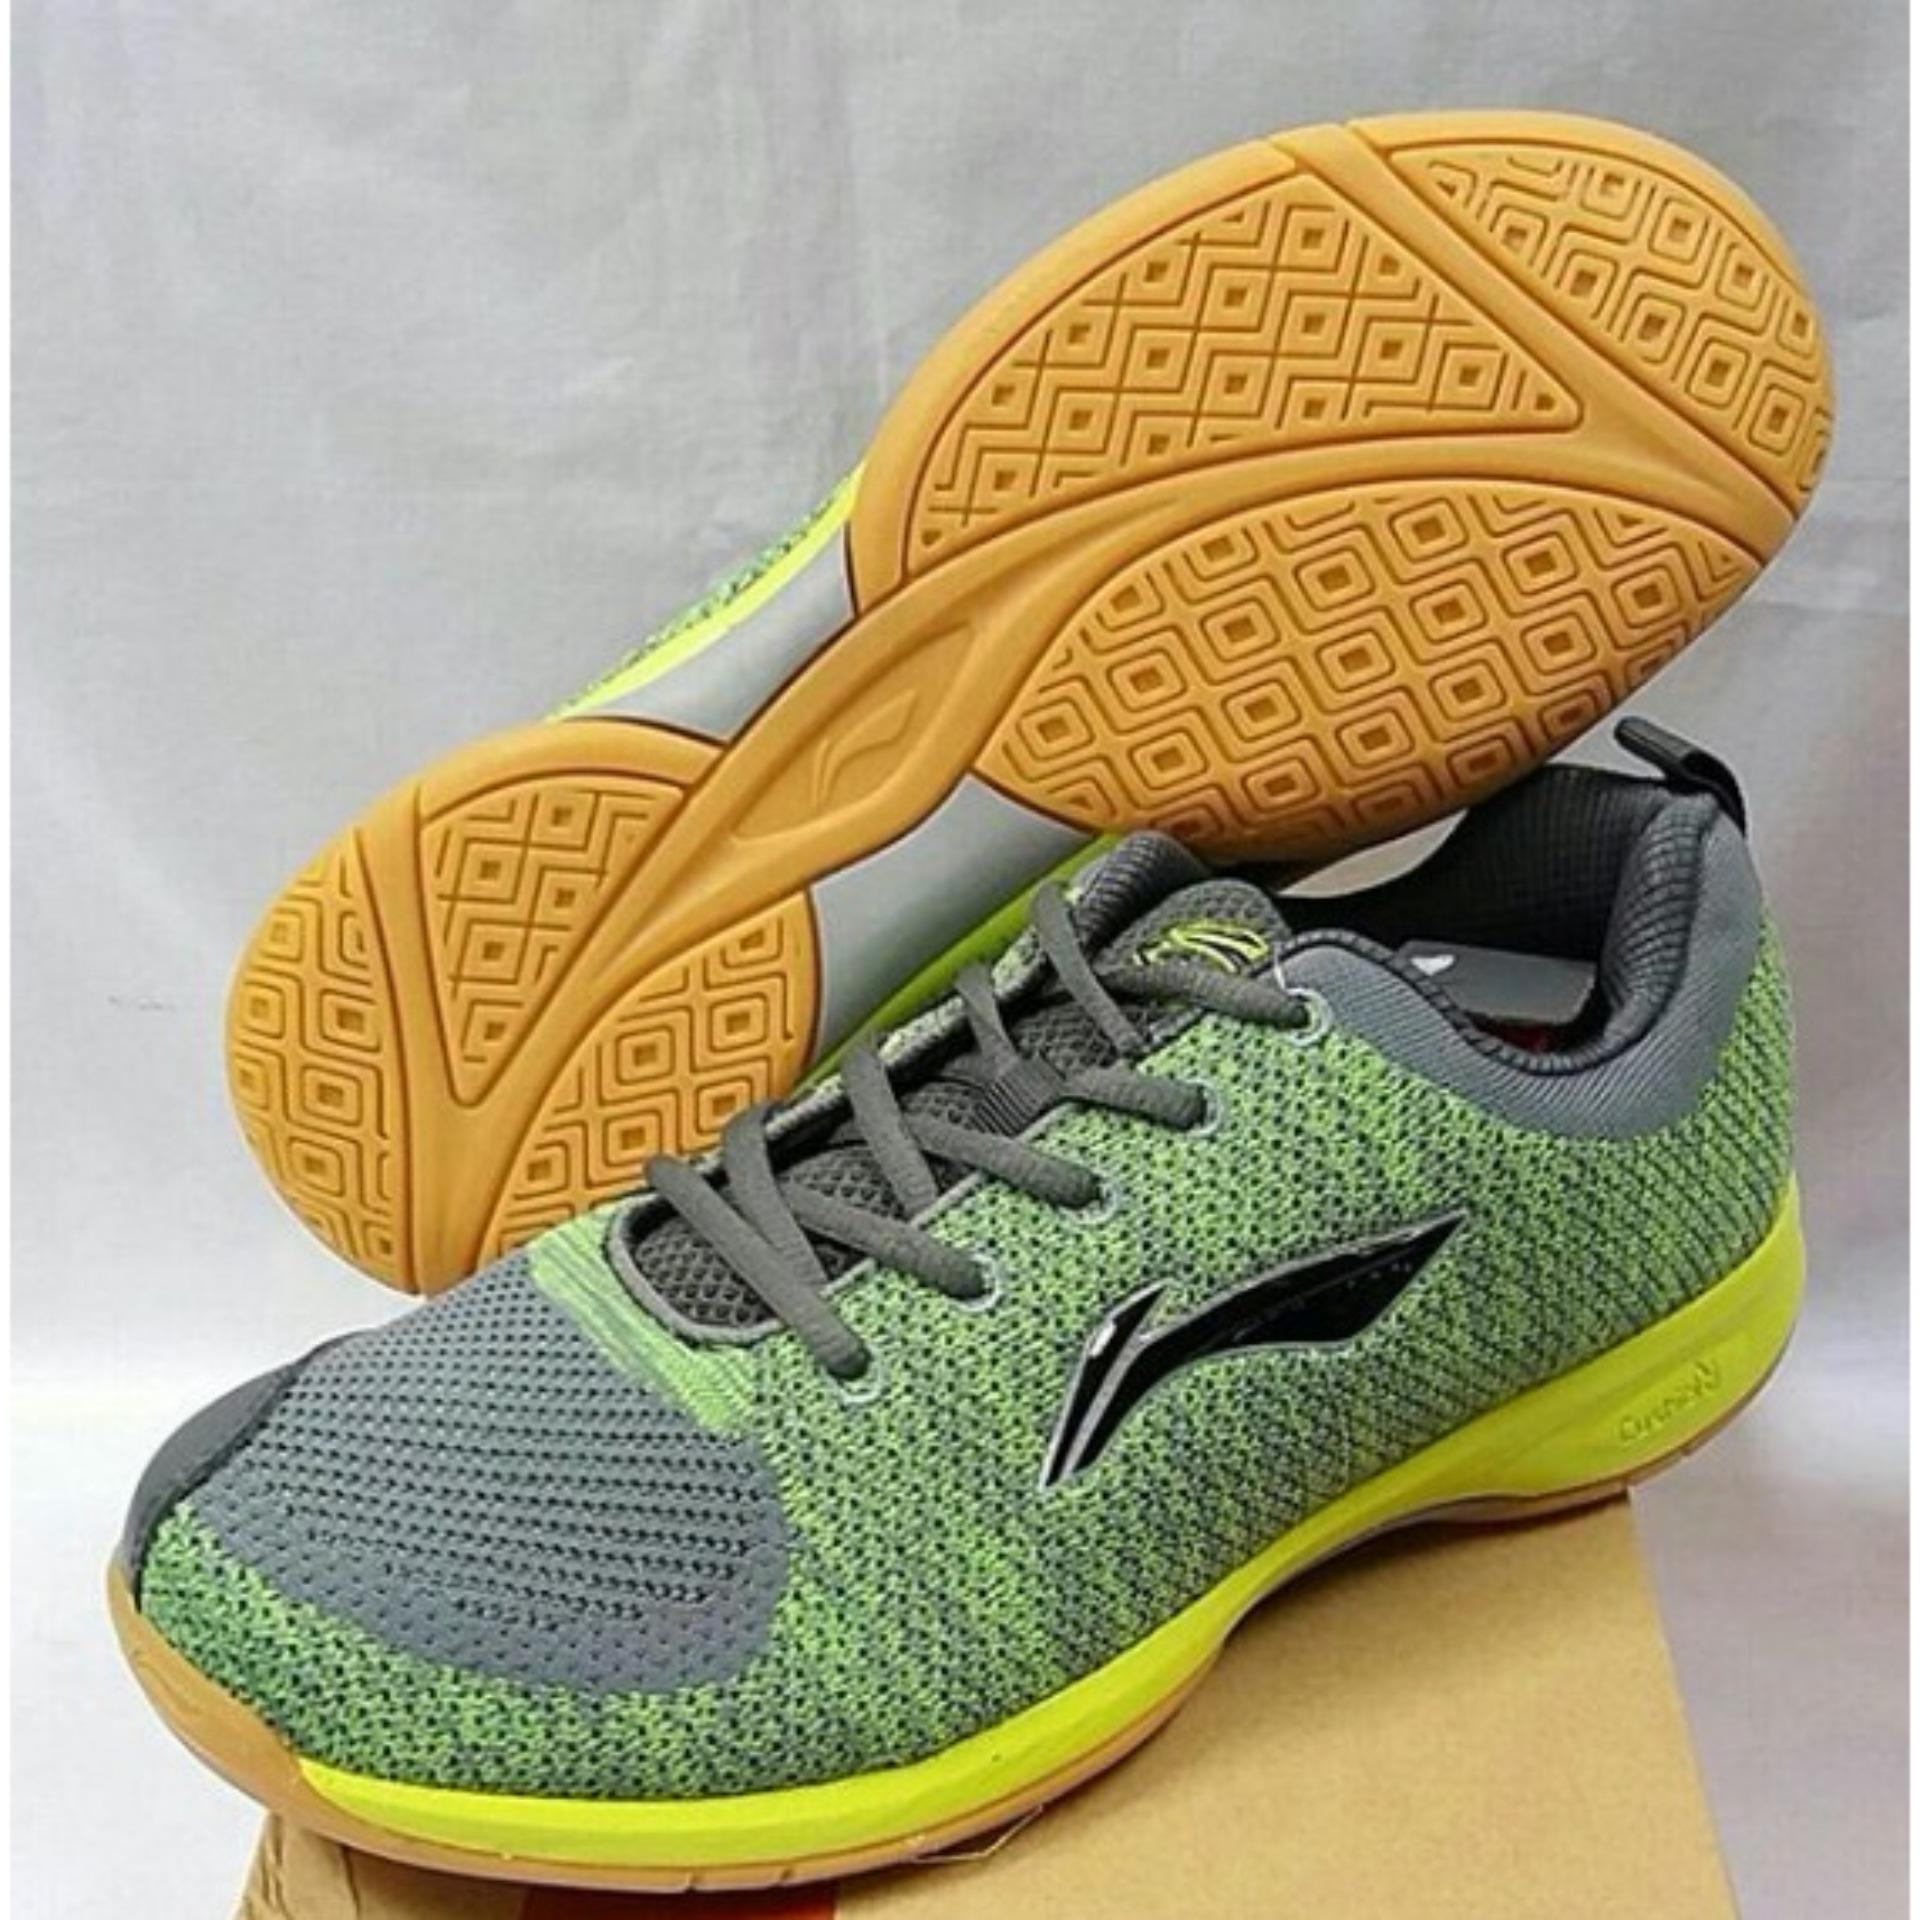 SEPATU LI-NING STAR BOLT AYTM053 ORIGINAL BADMINTON SHOES ADHA SPORT